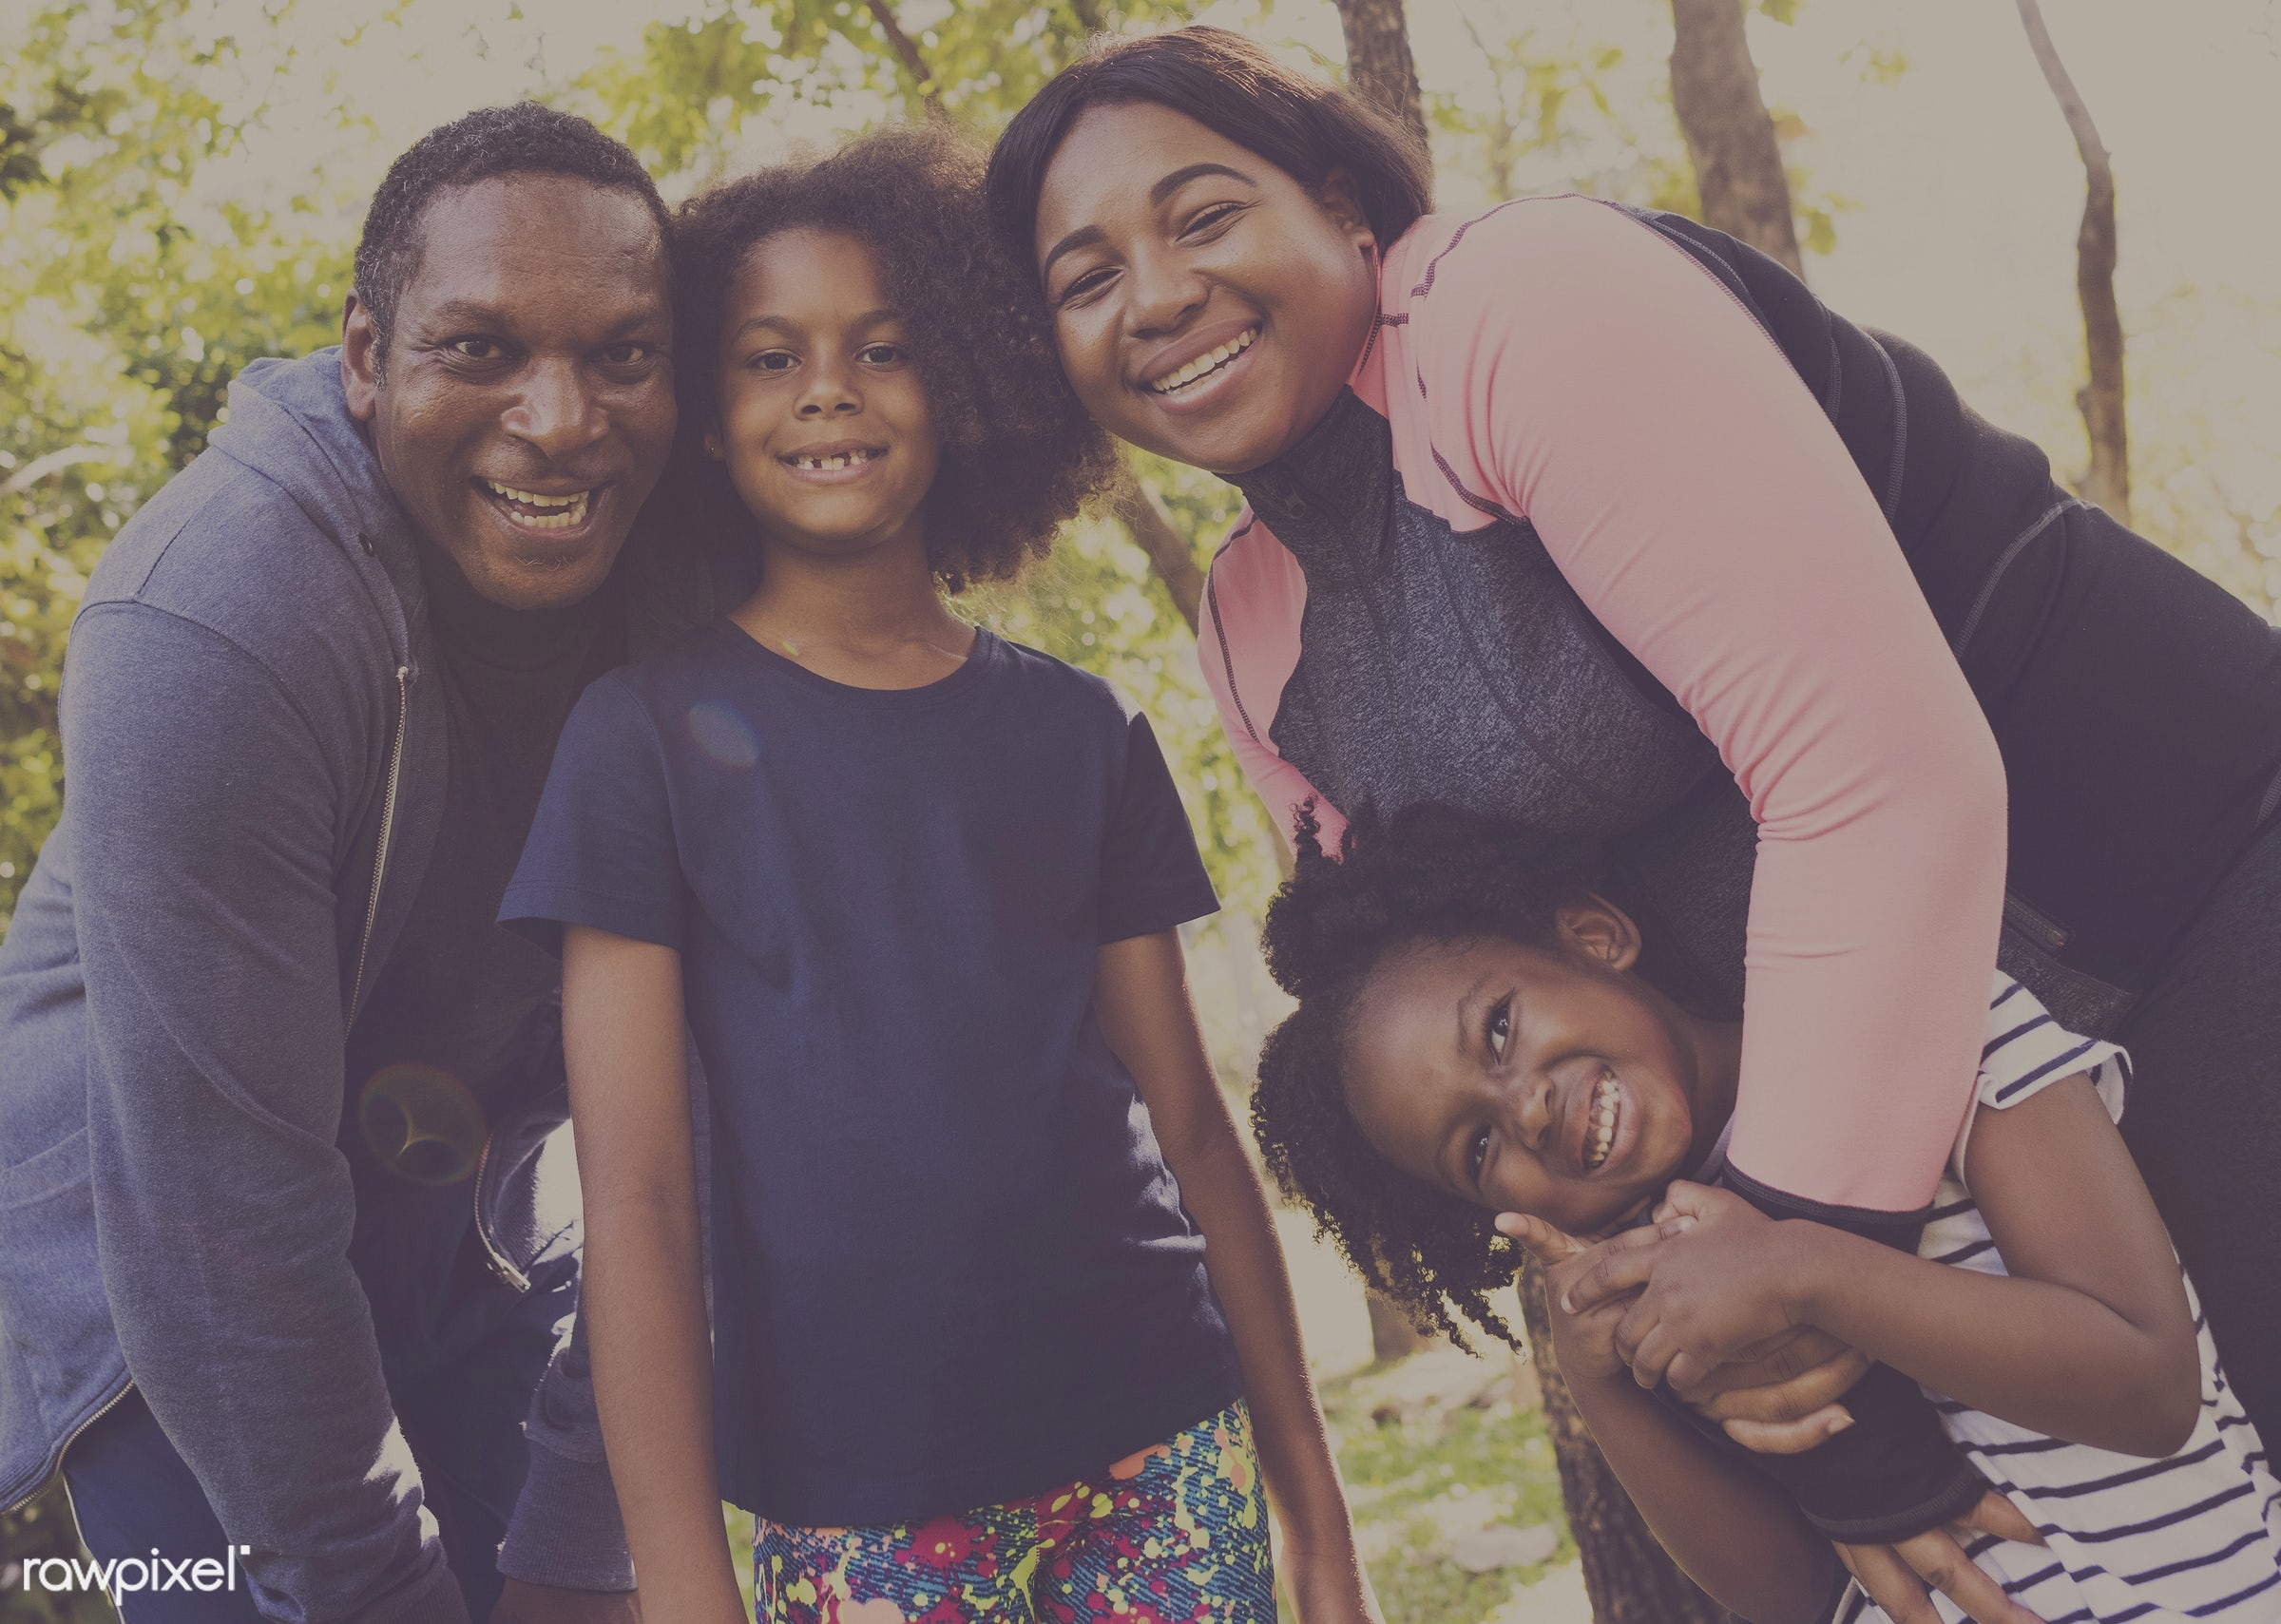 parents, african, daughter, land, exercise, recreation, father, related, sister, love, nature, green area, family, wellness...